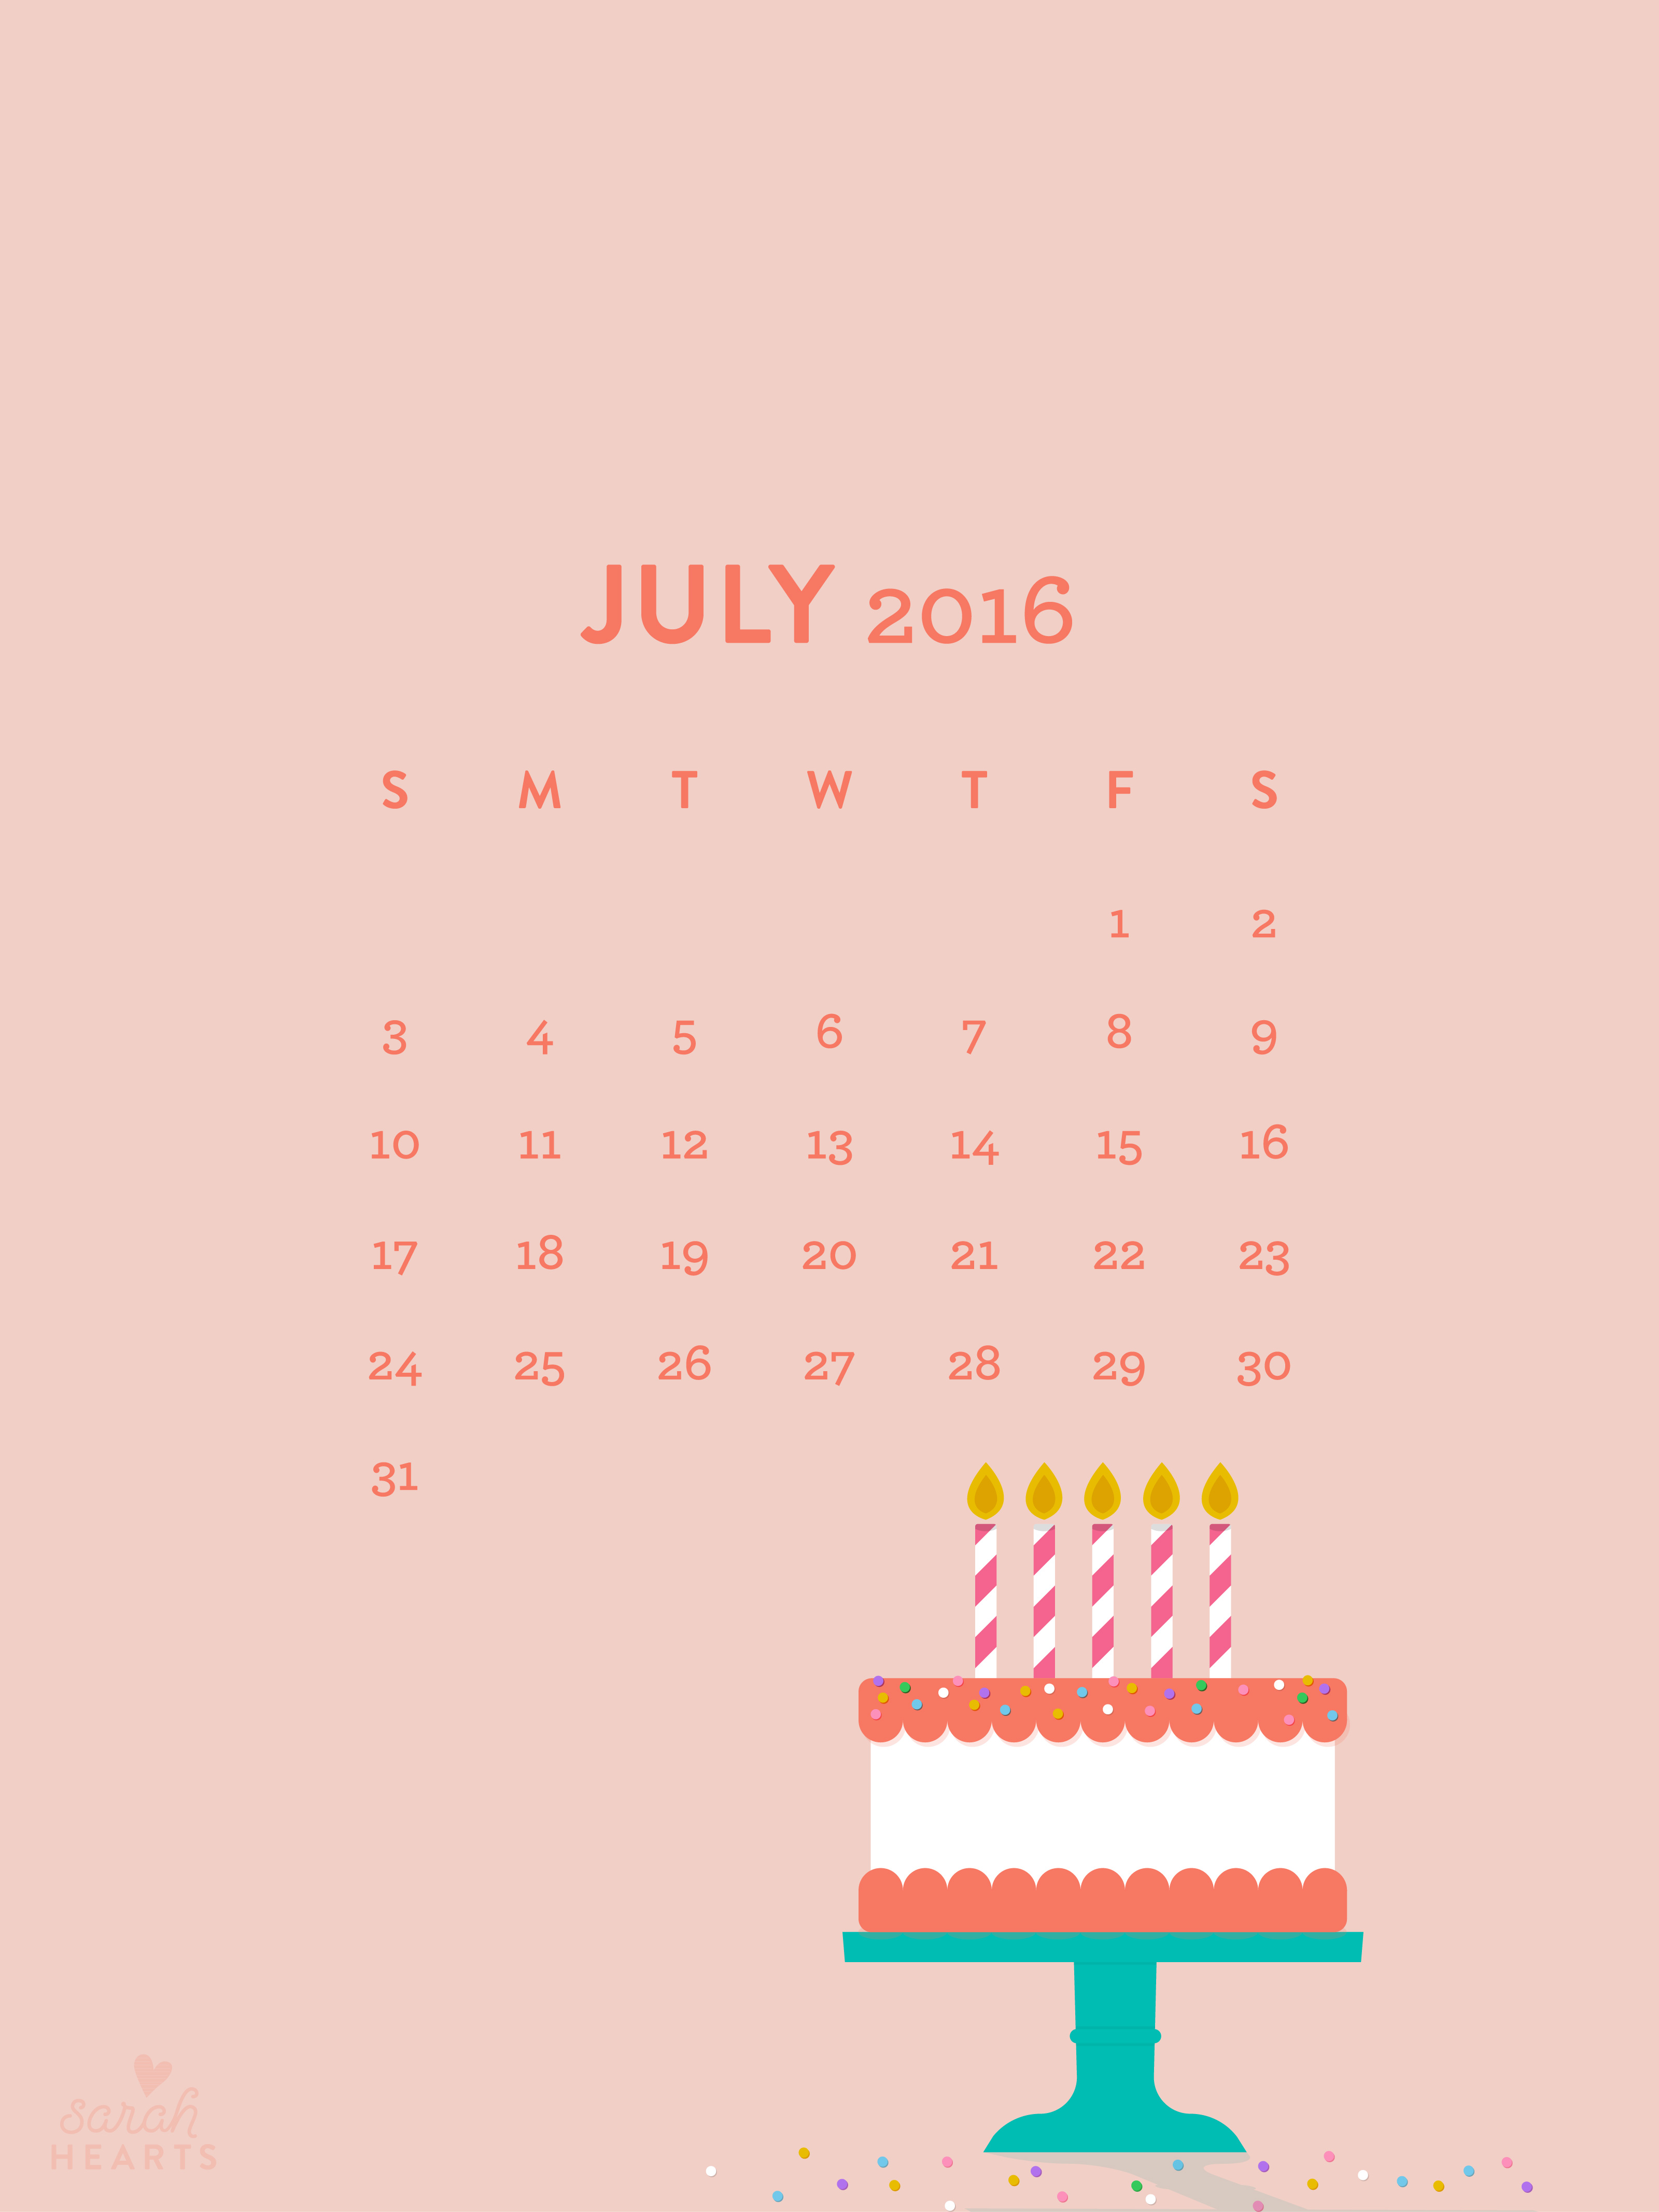 Calendar Wallpaper Ipad : July birthday cake calendar wallpaper sarah hearts